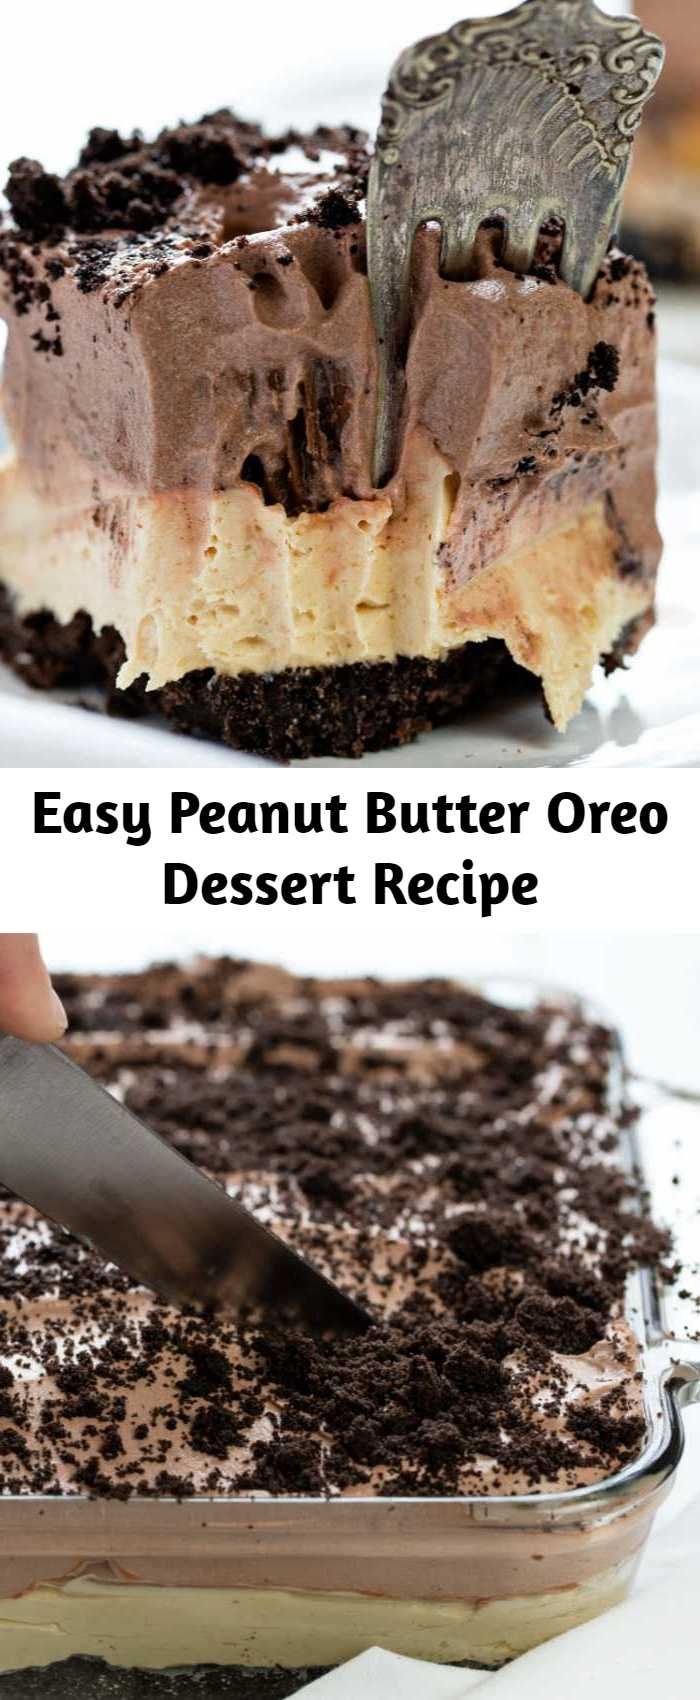 Easy Peanut Butter Oreo Dessert Recipe - When it comes to peanut butter desserts, this Peanut Butter Oreo Dessert will top them all.  This delectable treat has layers of velvety peanut butter filling, peanut butter filled chocolate candy, and a rich hot fudge mousse piled on top of an Oreo cookie crust.